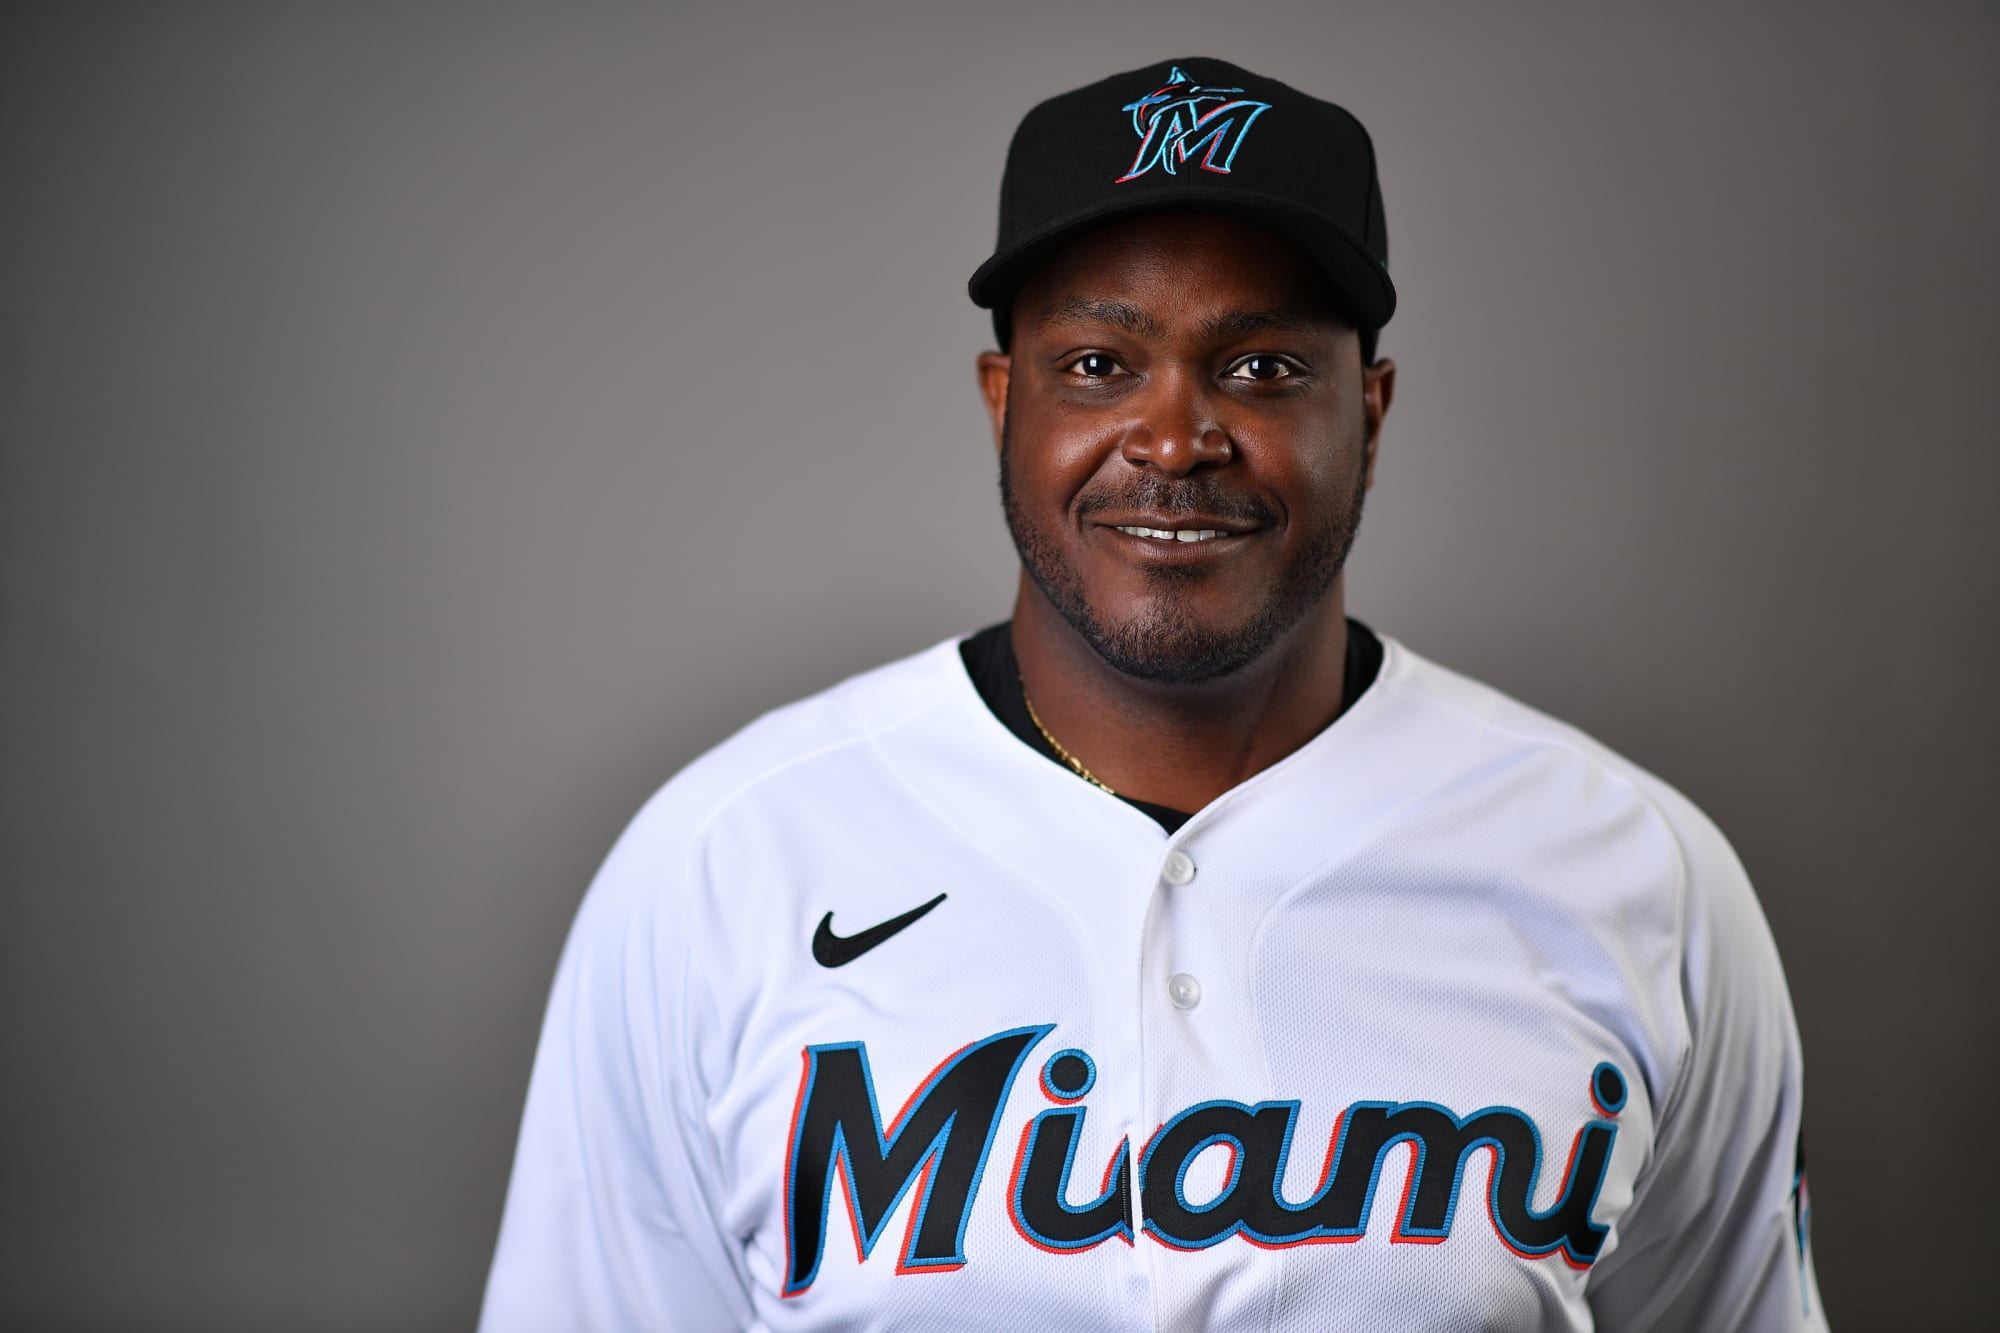 Miami Marlins: James Rowson has become the team's top offseason signing